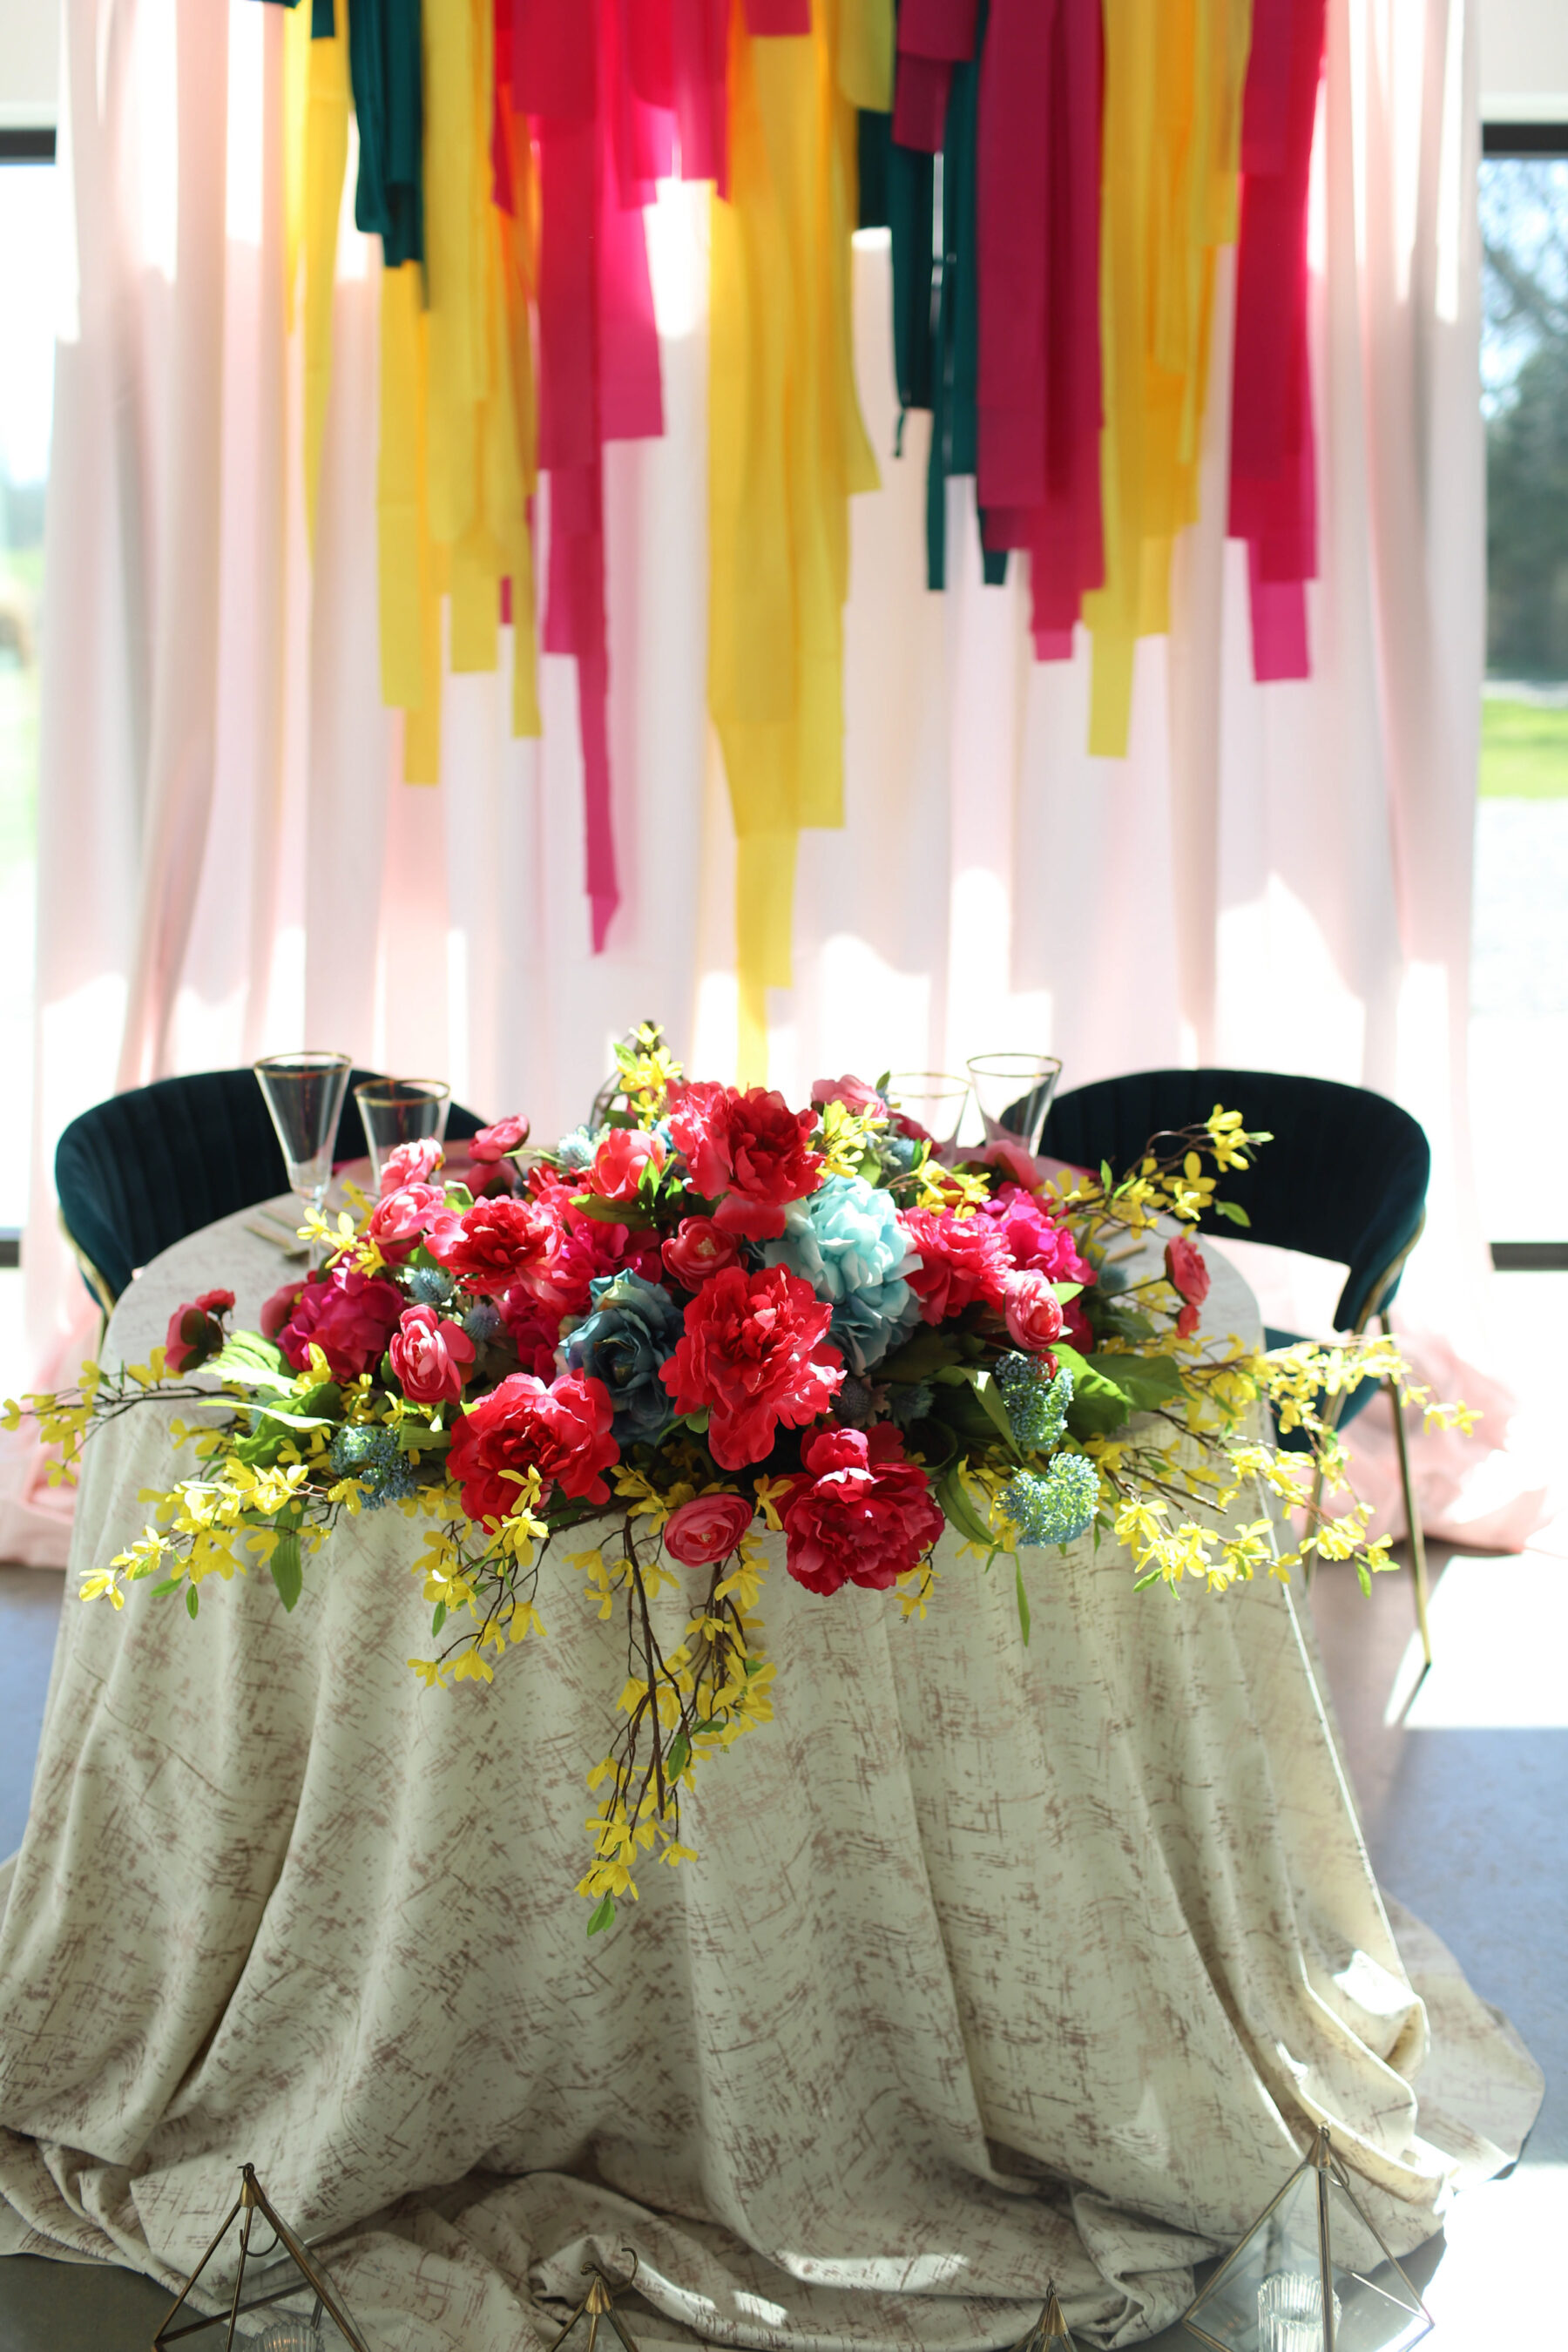 Silk Floral Options from Creations by Debbie   Nashville Bride Guide